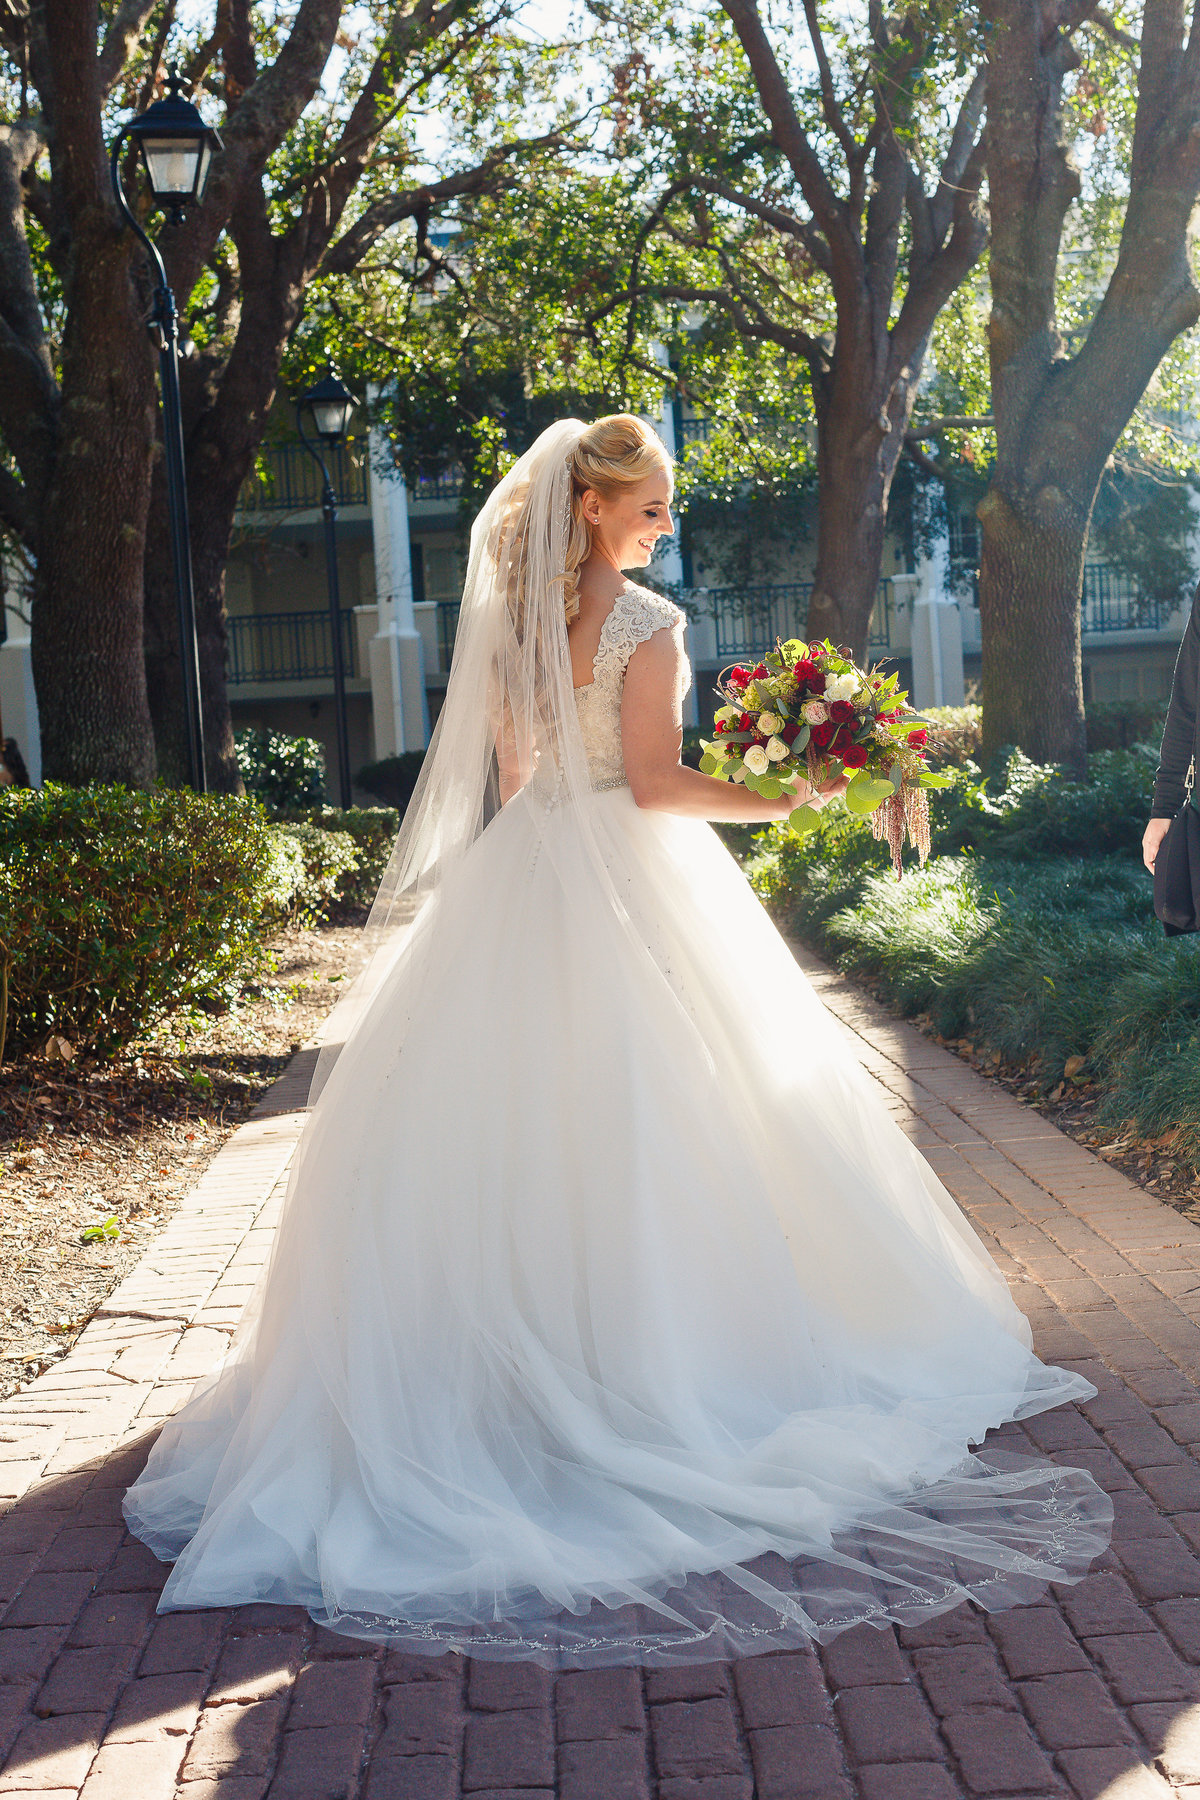 A Bride at a Disney Port Orleans Wedding Looks Back Over Her Shoulder